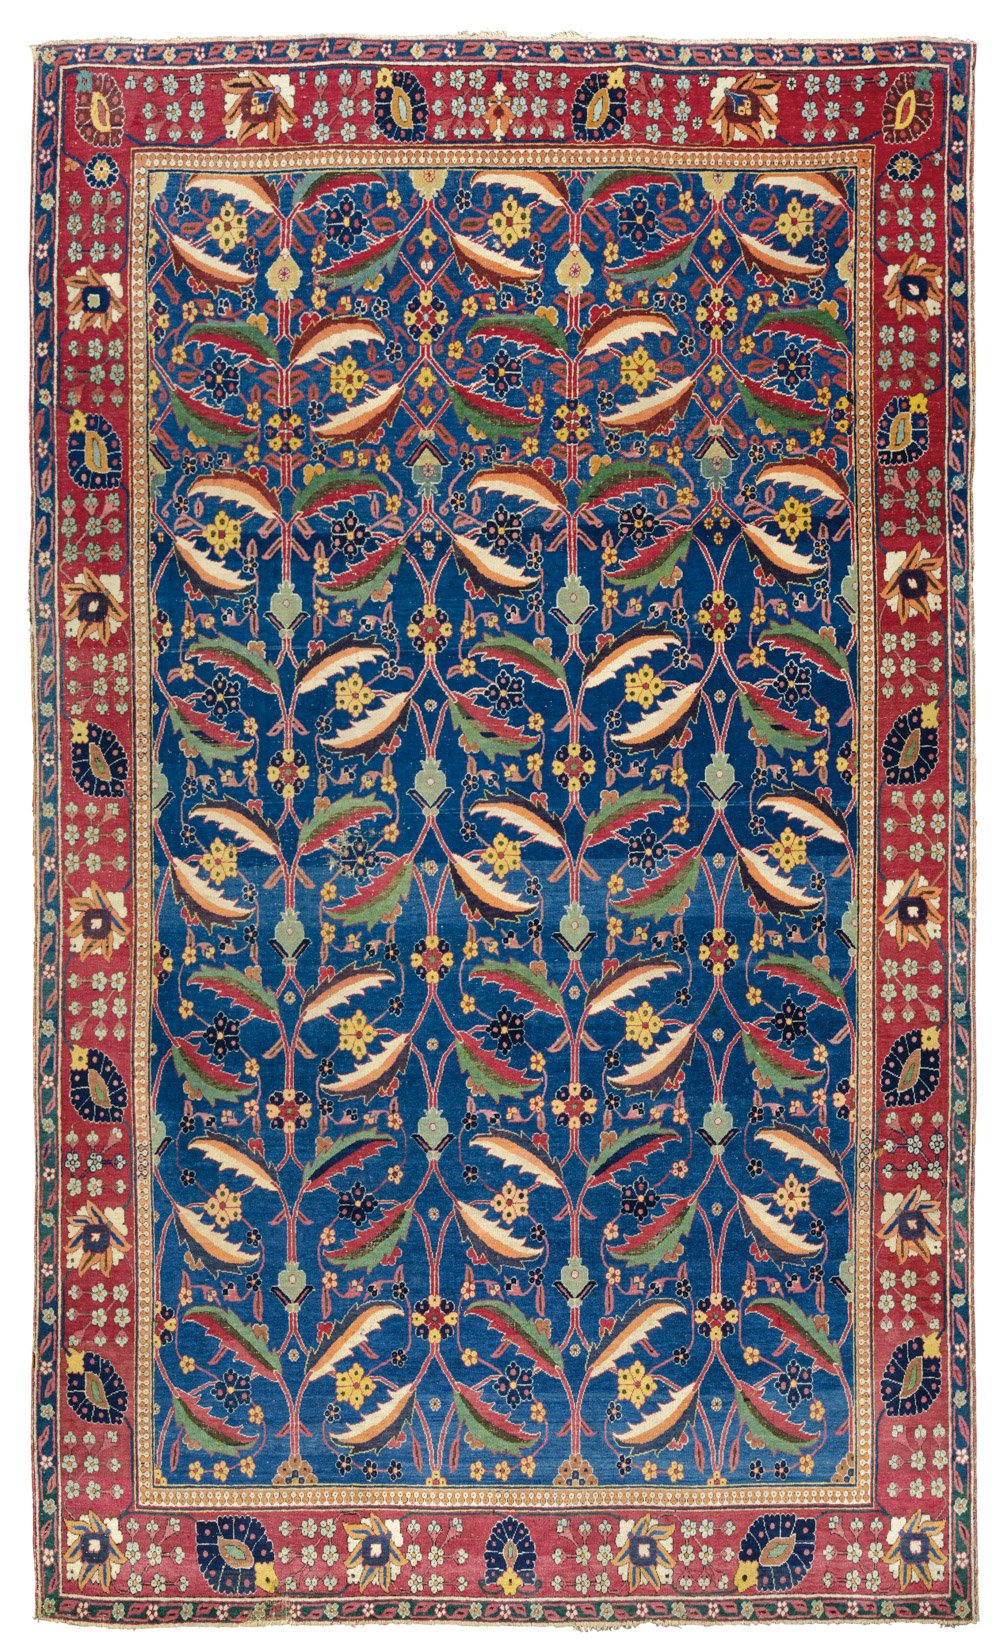 "Kerman 'vase' carpet, southeast Persia, late 17th century. 1.51 x 2.51m (5'0"" x 8'3""). £1,000,000-1,500,000"